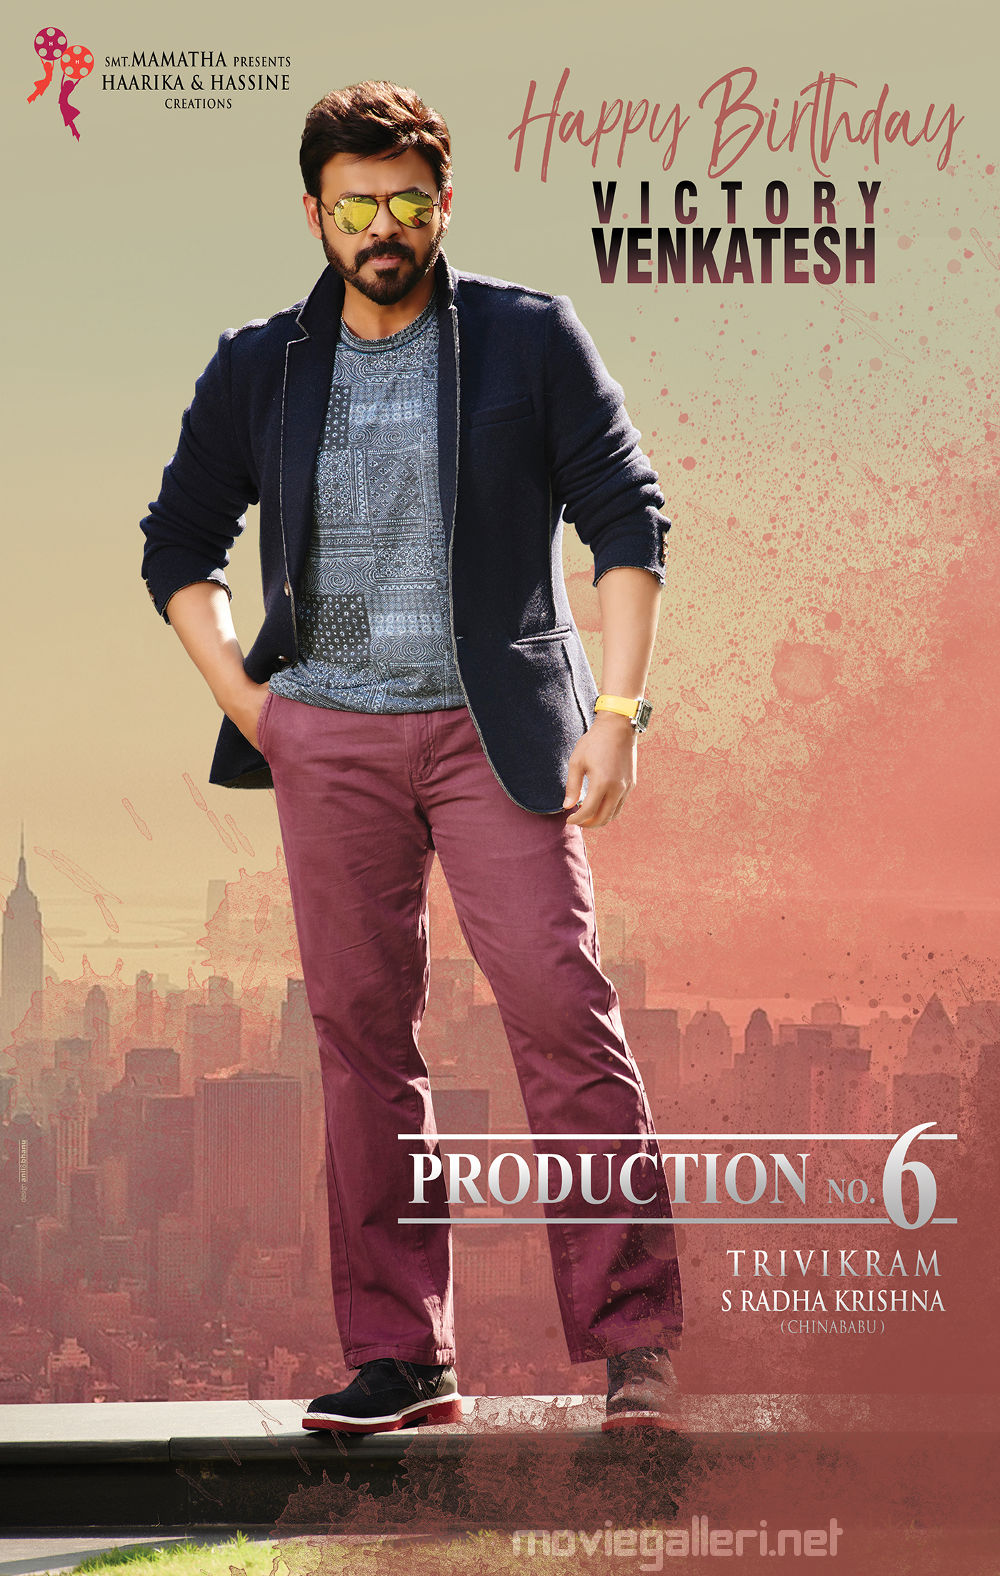 Trivikram Haarika & Hassine Creations birthday wishes to Venkatesh Posters